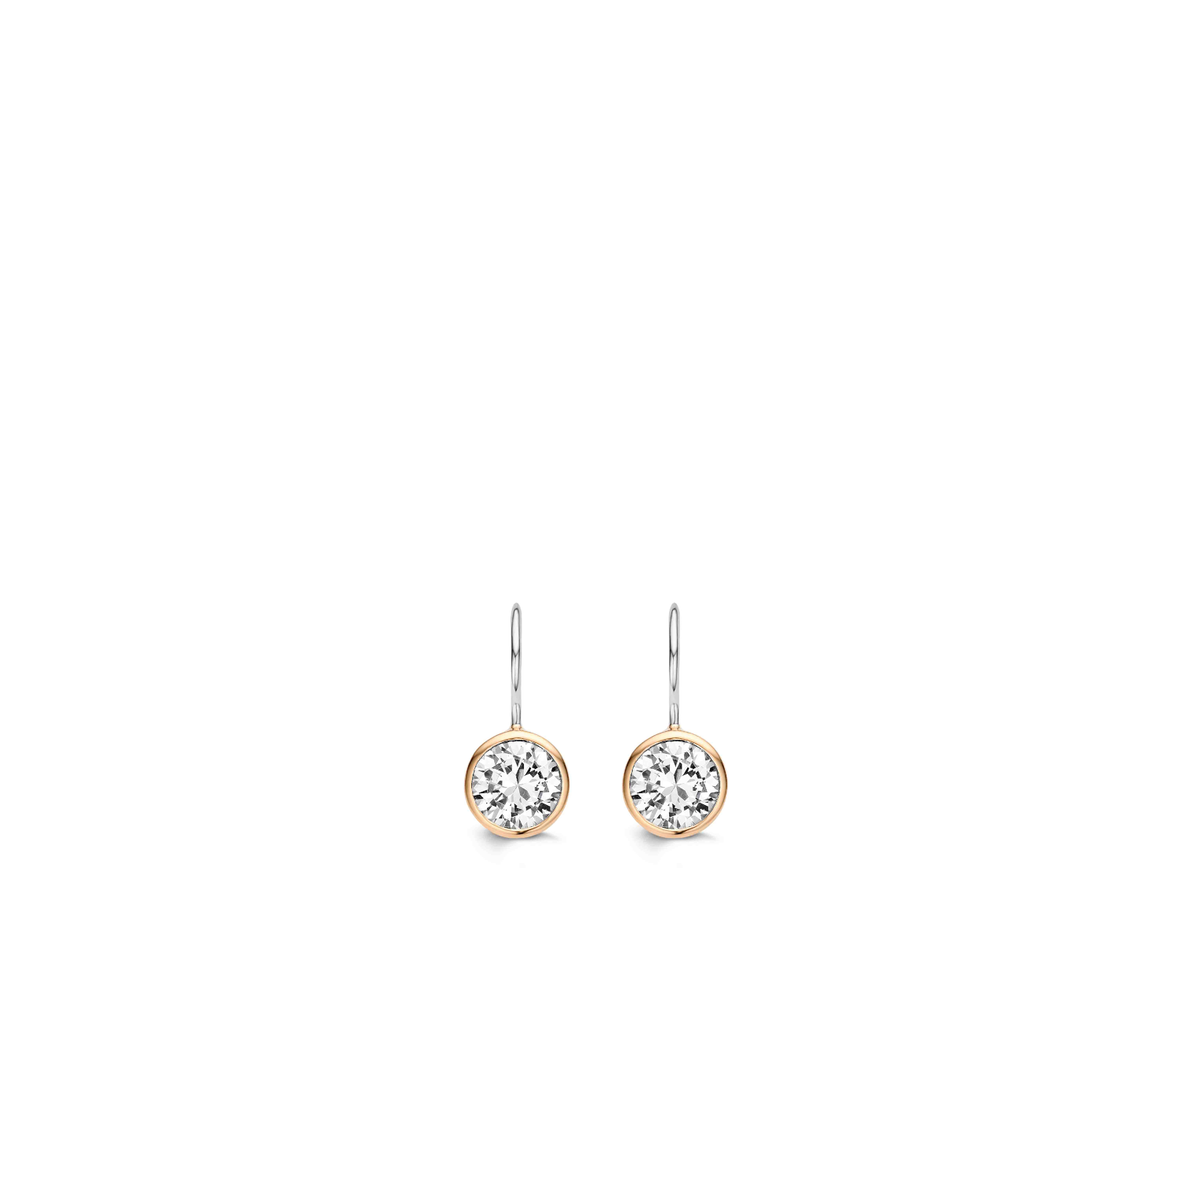 TI SENTO - Milano Earrings 7653ZR